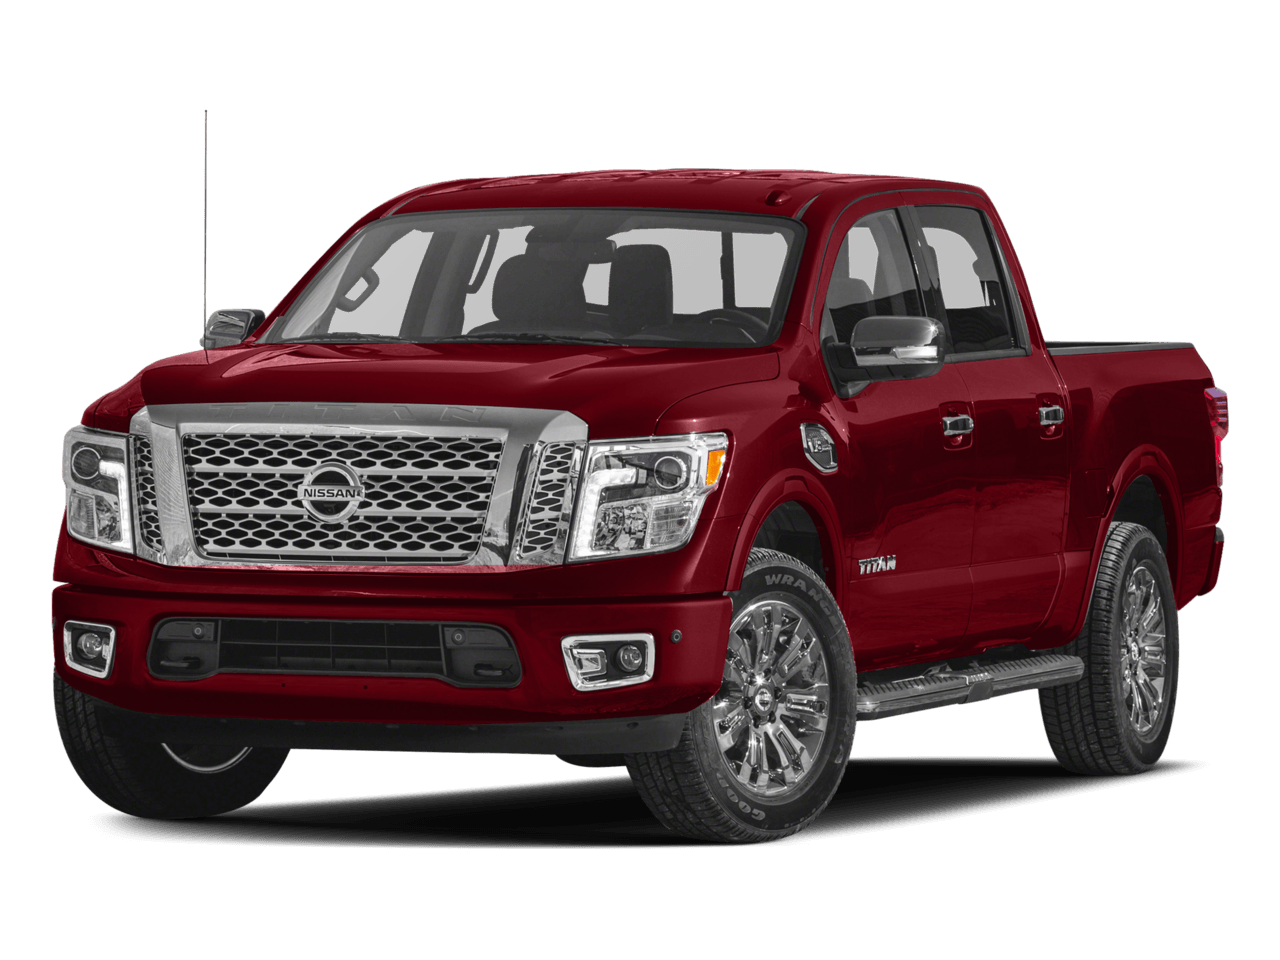 experience the 2017 nissan titan at sorg nissan today. Black Bedroom Furniture Sets. Home Design Ideas